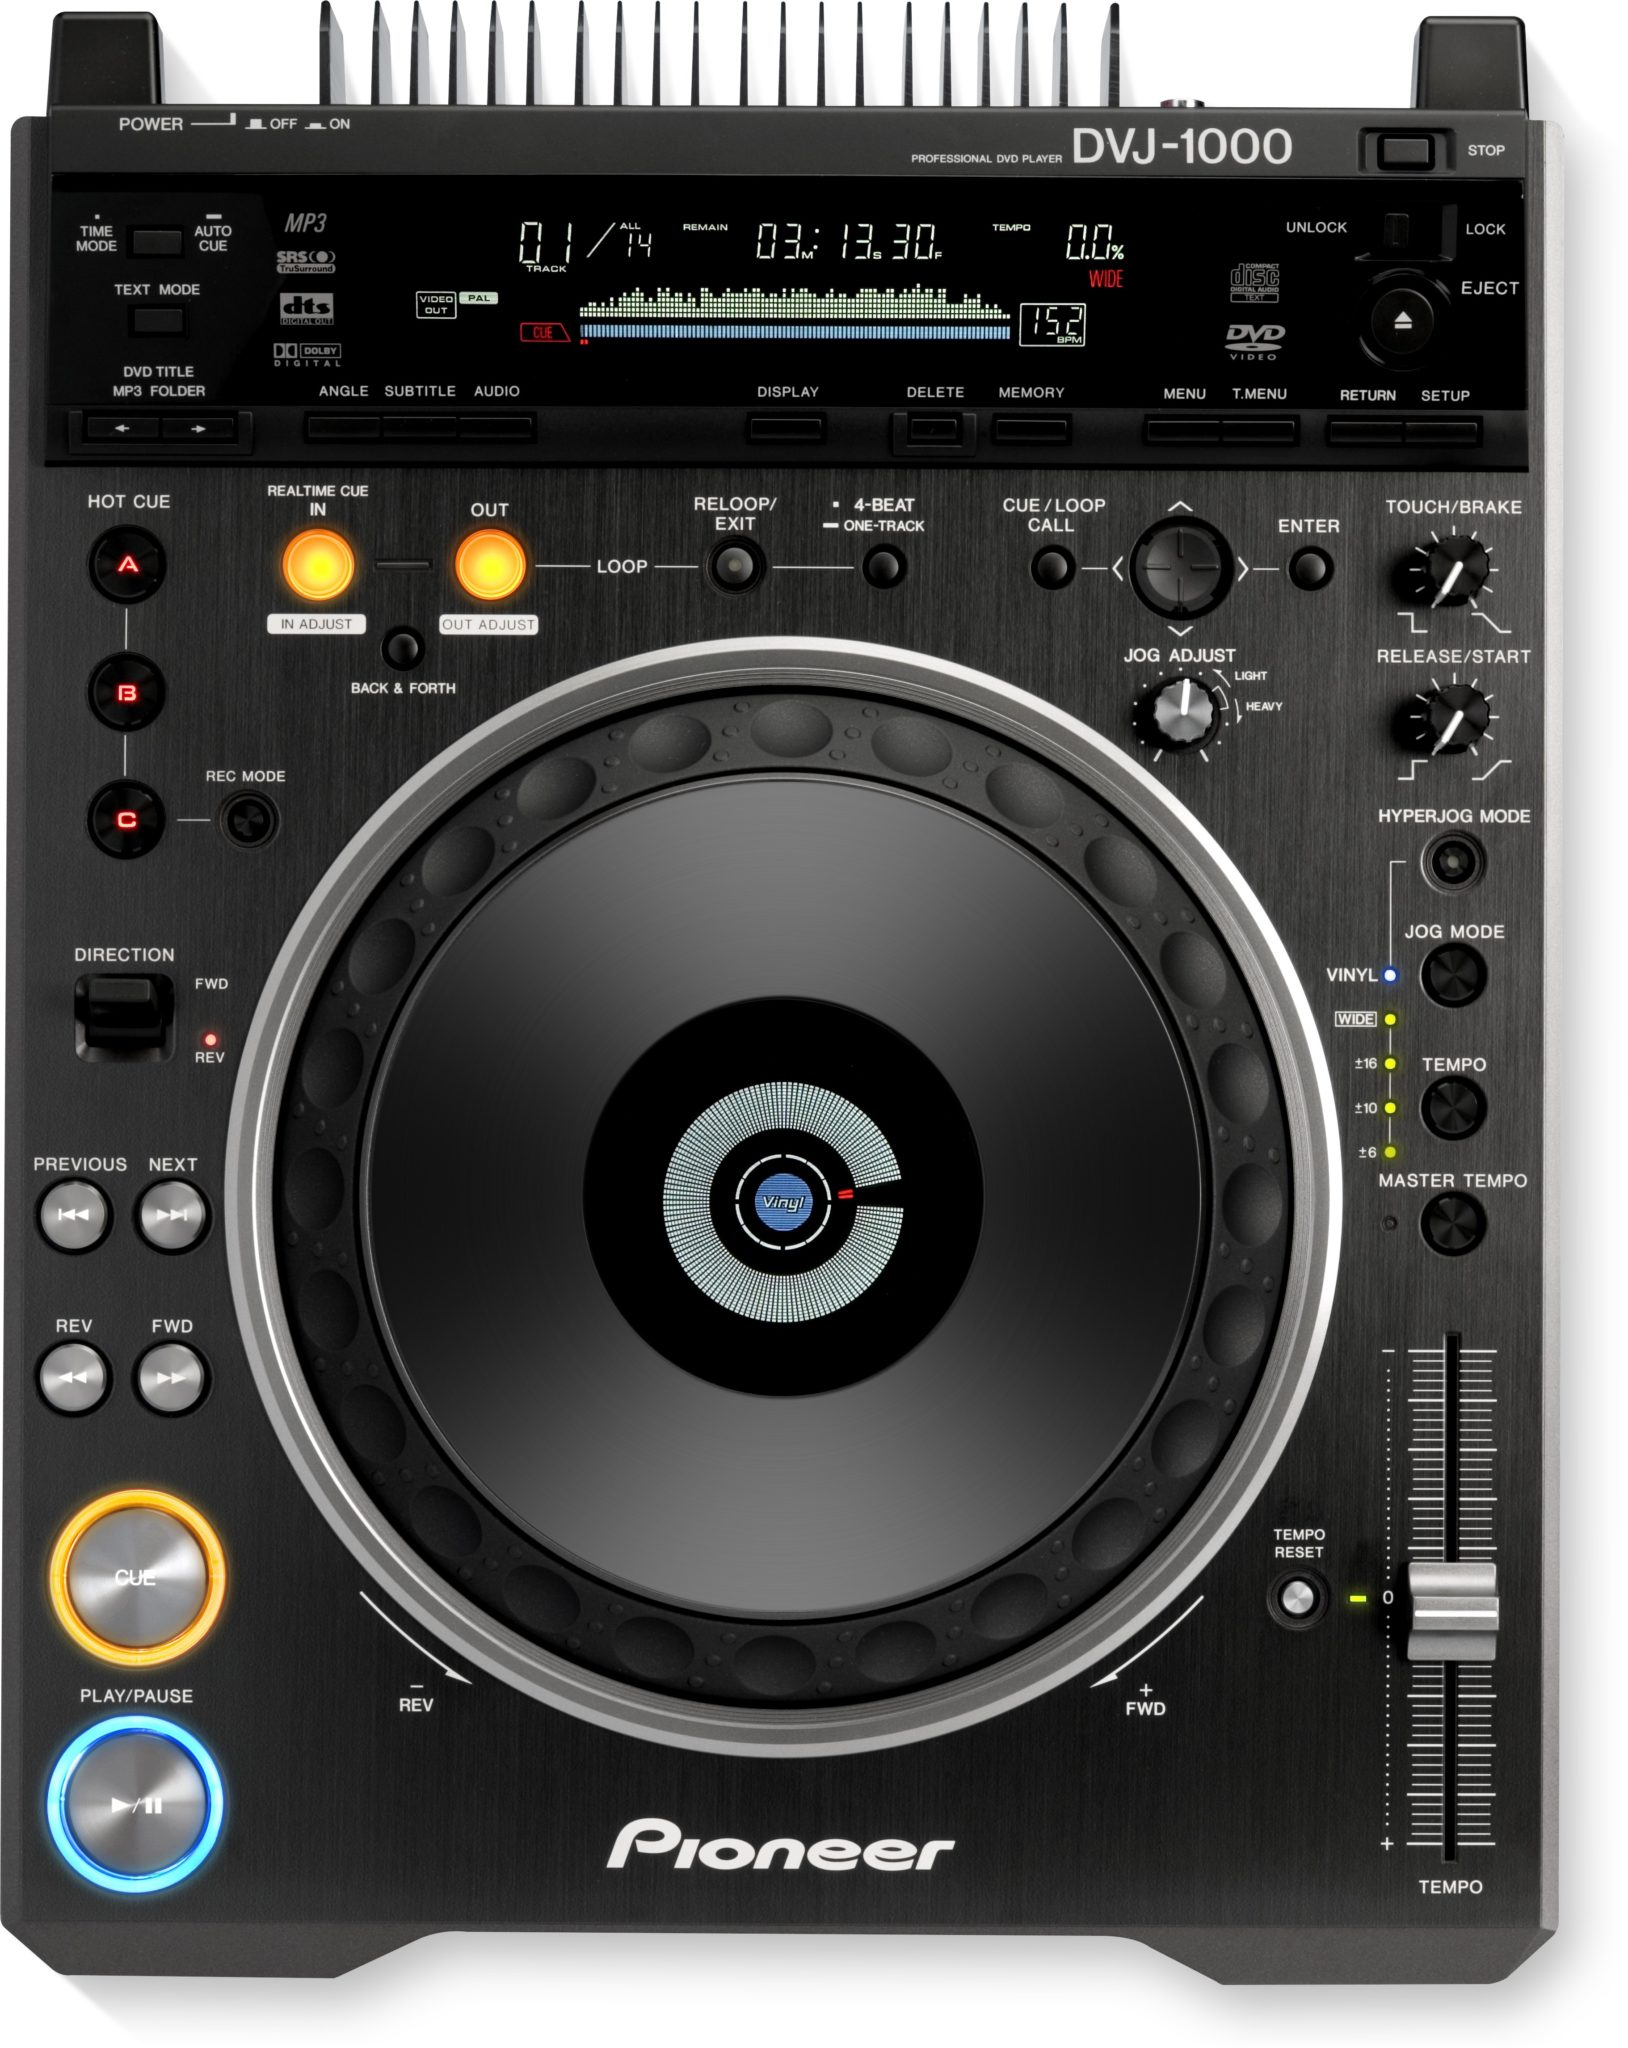 The Pioneer CDJ Guidebook: A Comparison & History of CDJs